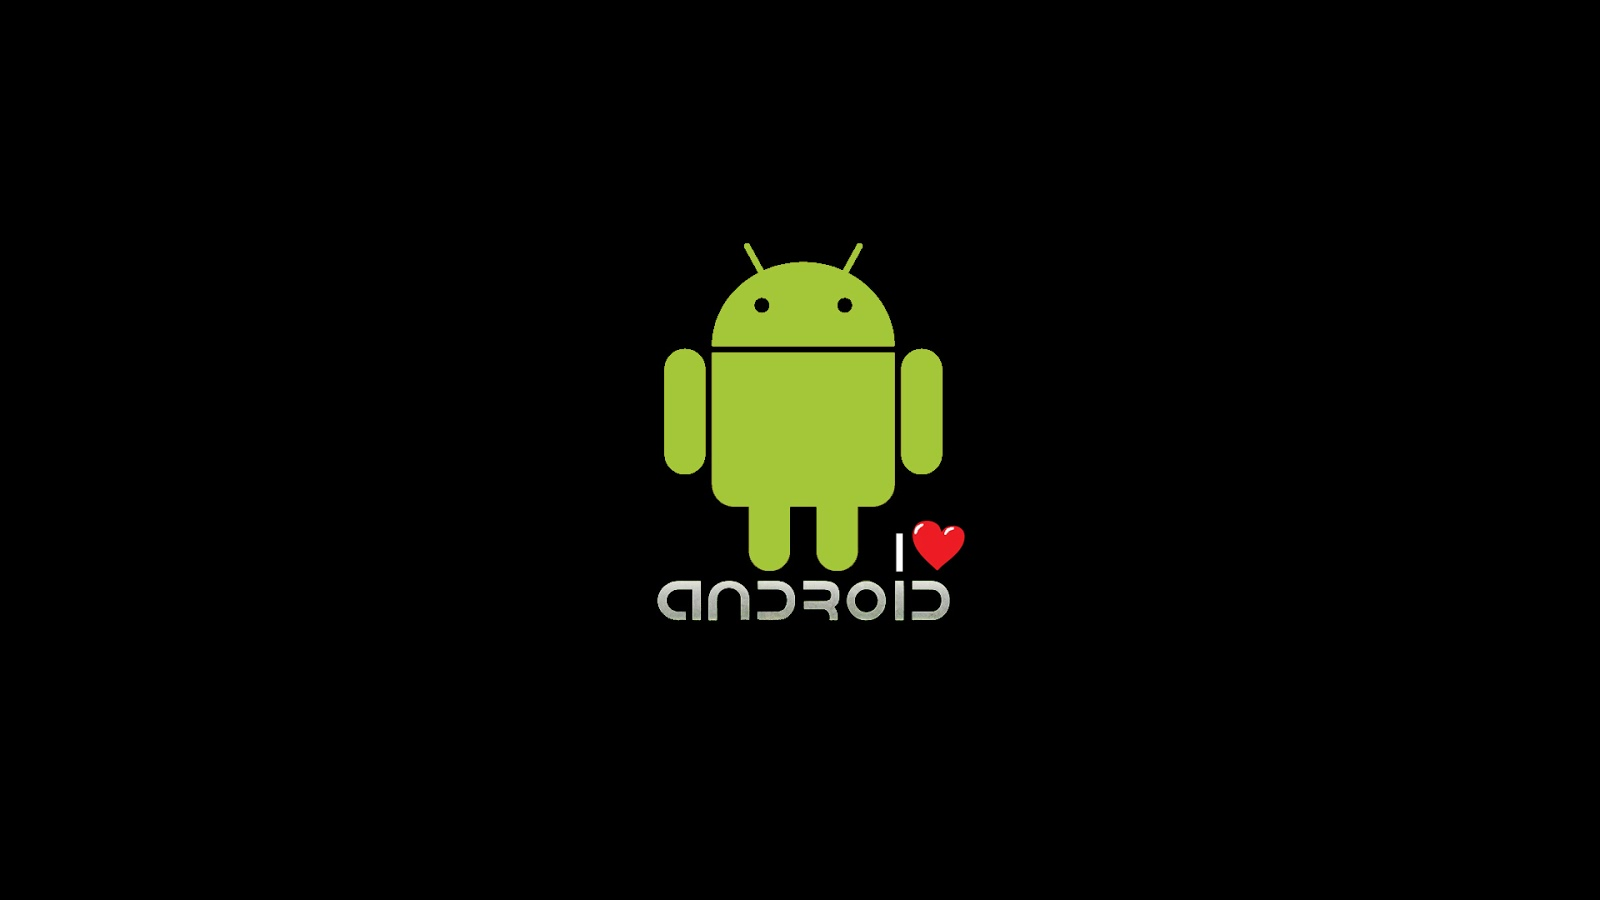 Love Mobile Wallpapers And Backgrounds: Mooie Android Wallpapers